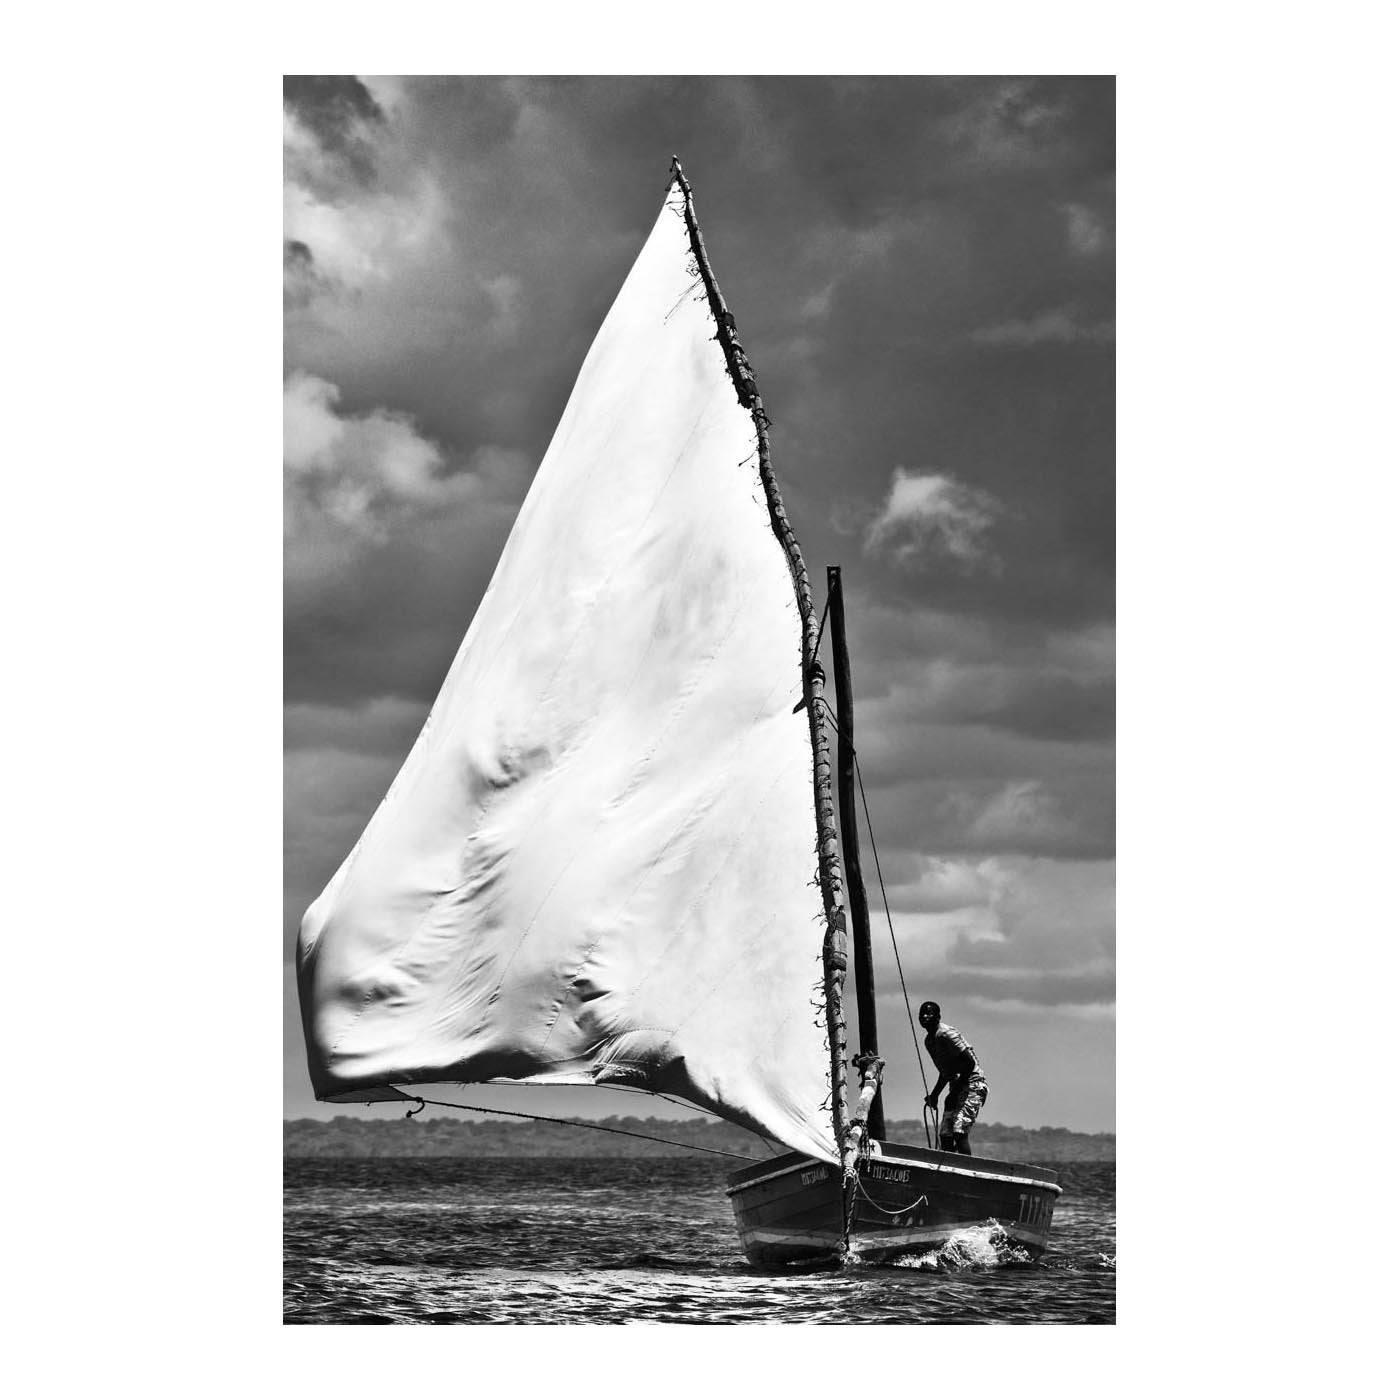 ILHA_04 BY DAVID BALLAM. Dhow VI, Ilha de Moçambique. This artwork is from the Ilha Collection by South African fine arts photographer David Ballam. It features a beautiful seascape view of fishermen at work.